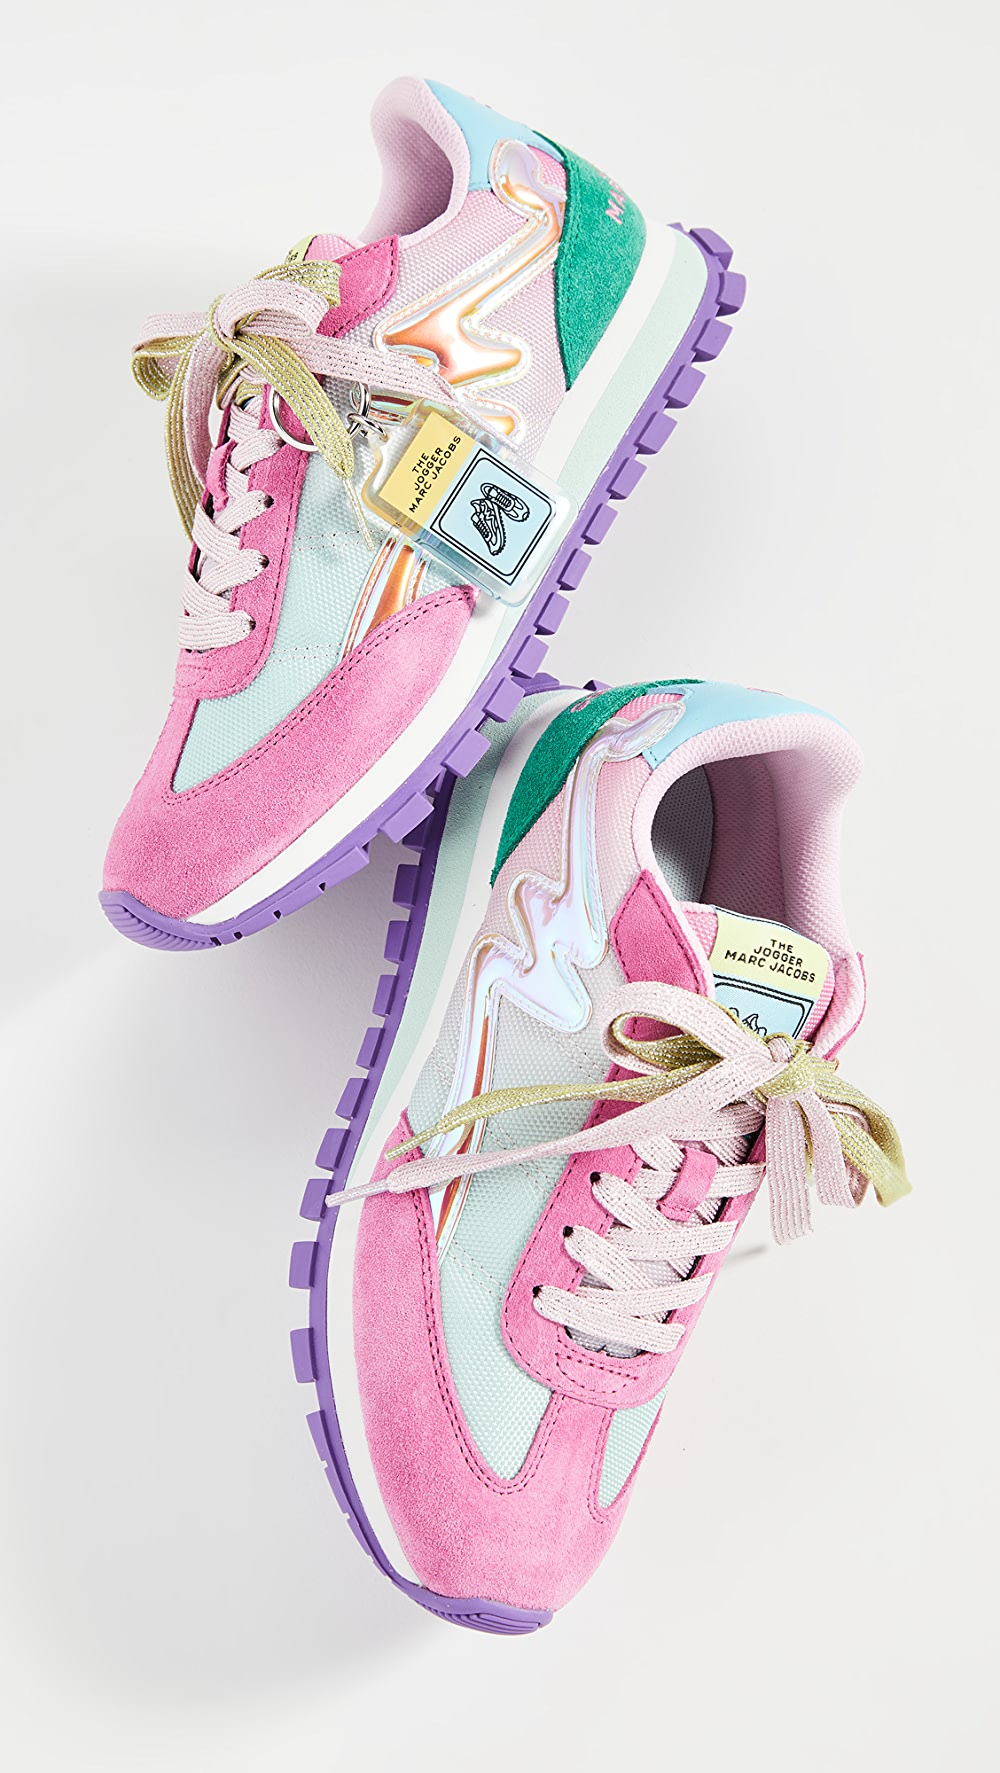 Active The Marc Jacobs - The Jogger Sneakers Agreeable To Taste